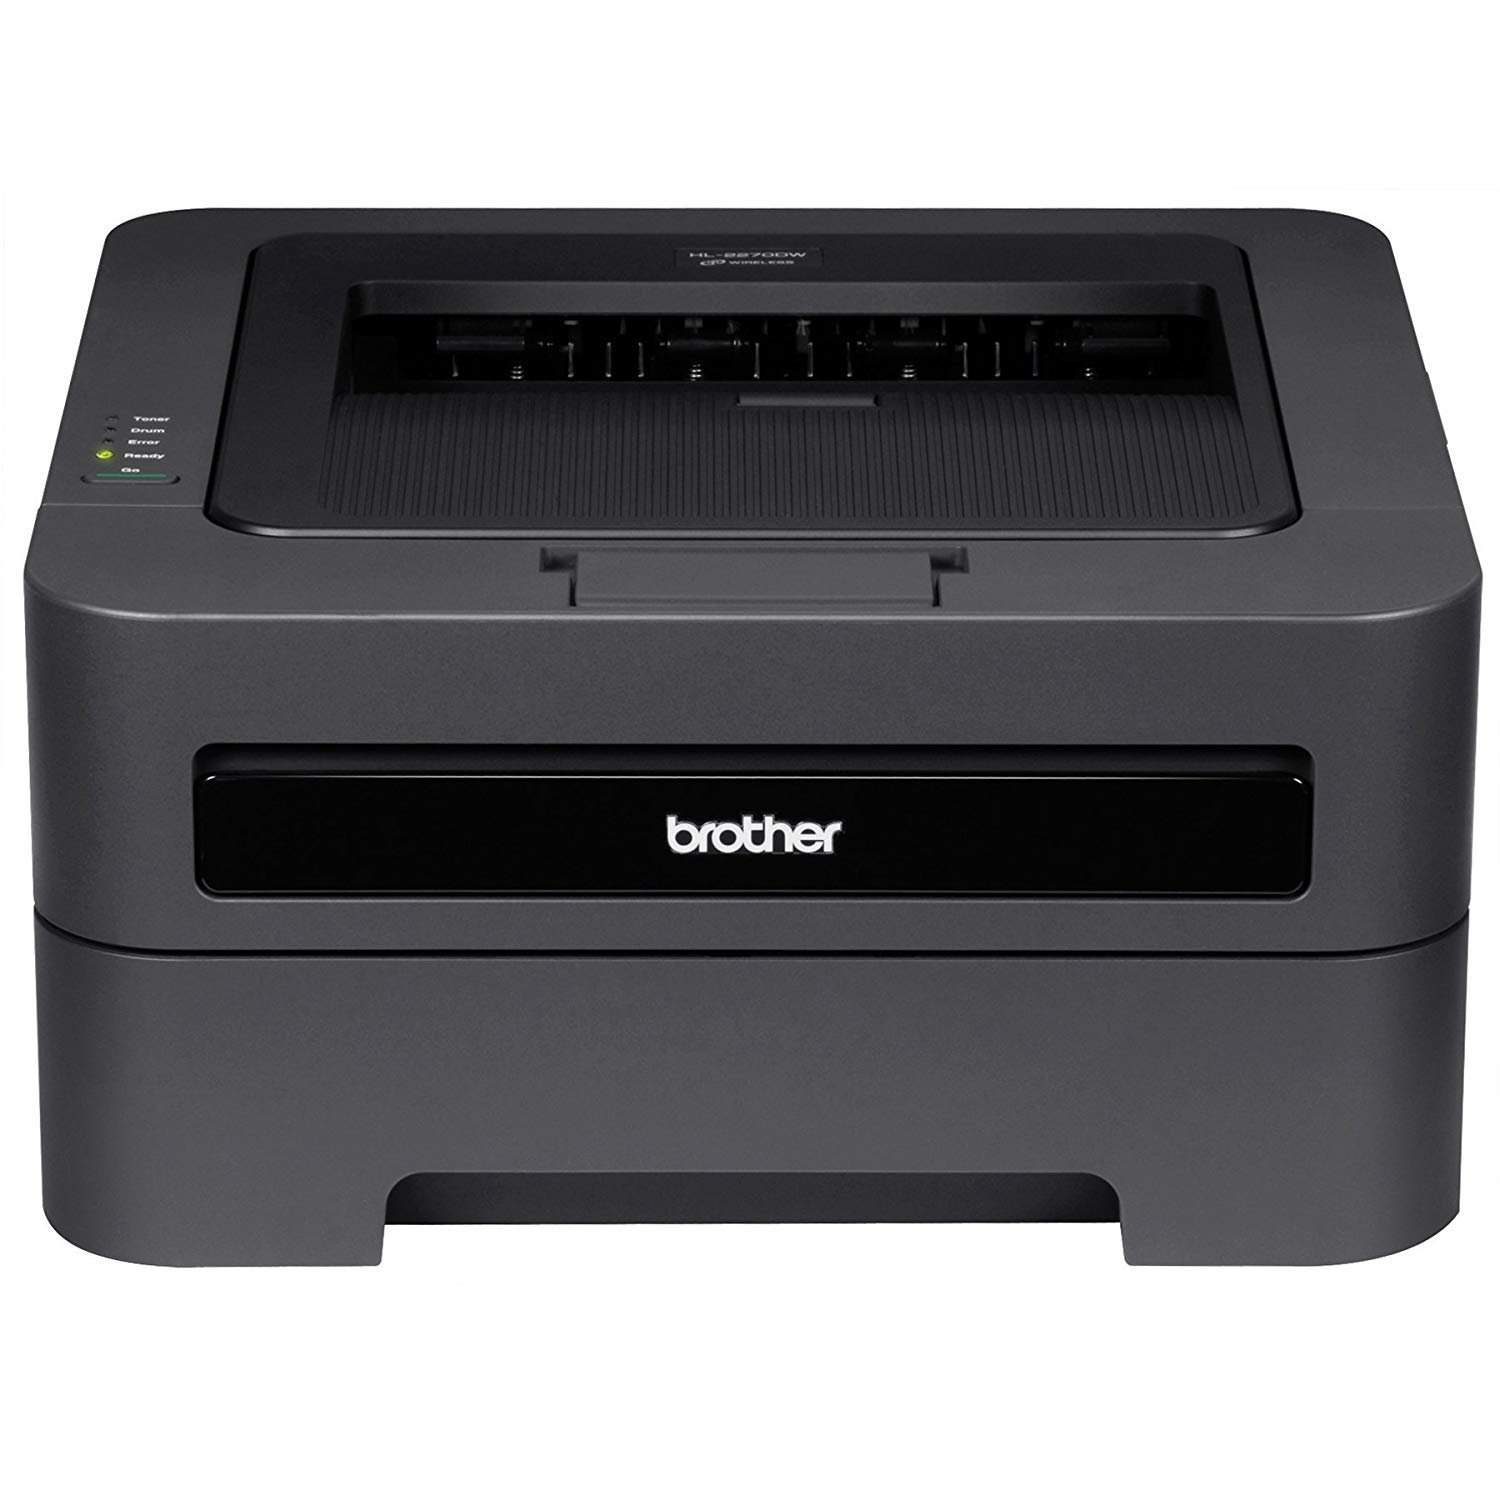 Brother HL-2270DW Compact Laser Printer